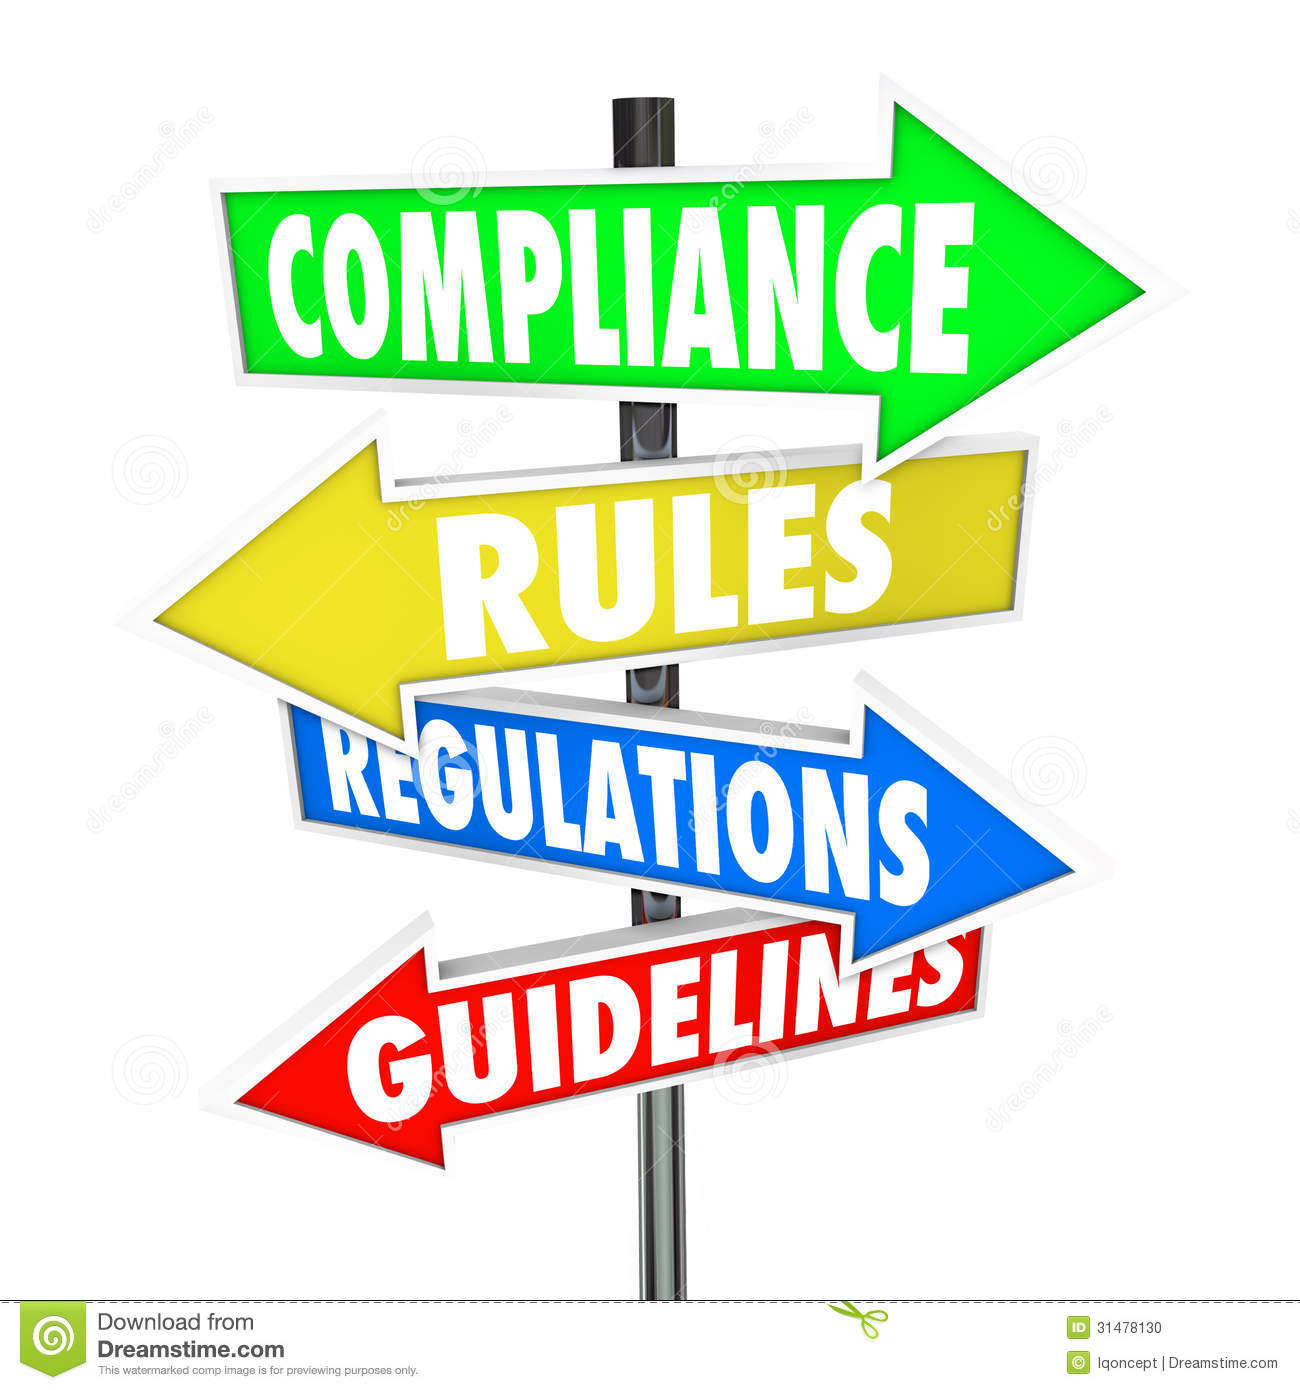 Rules clipart. Compliance regulations panda free